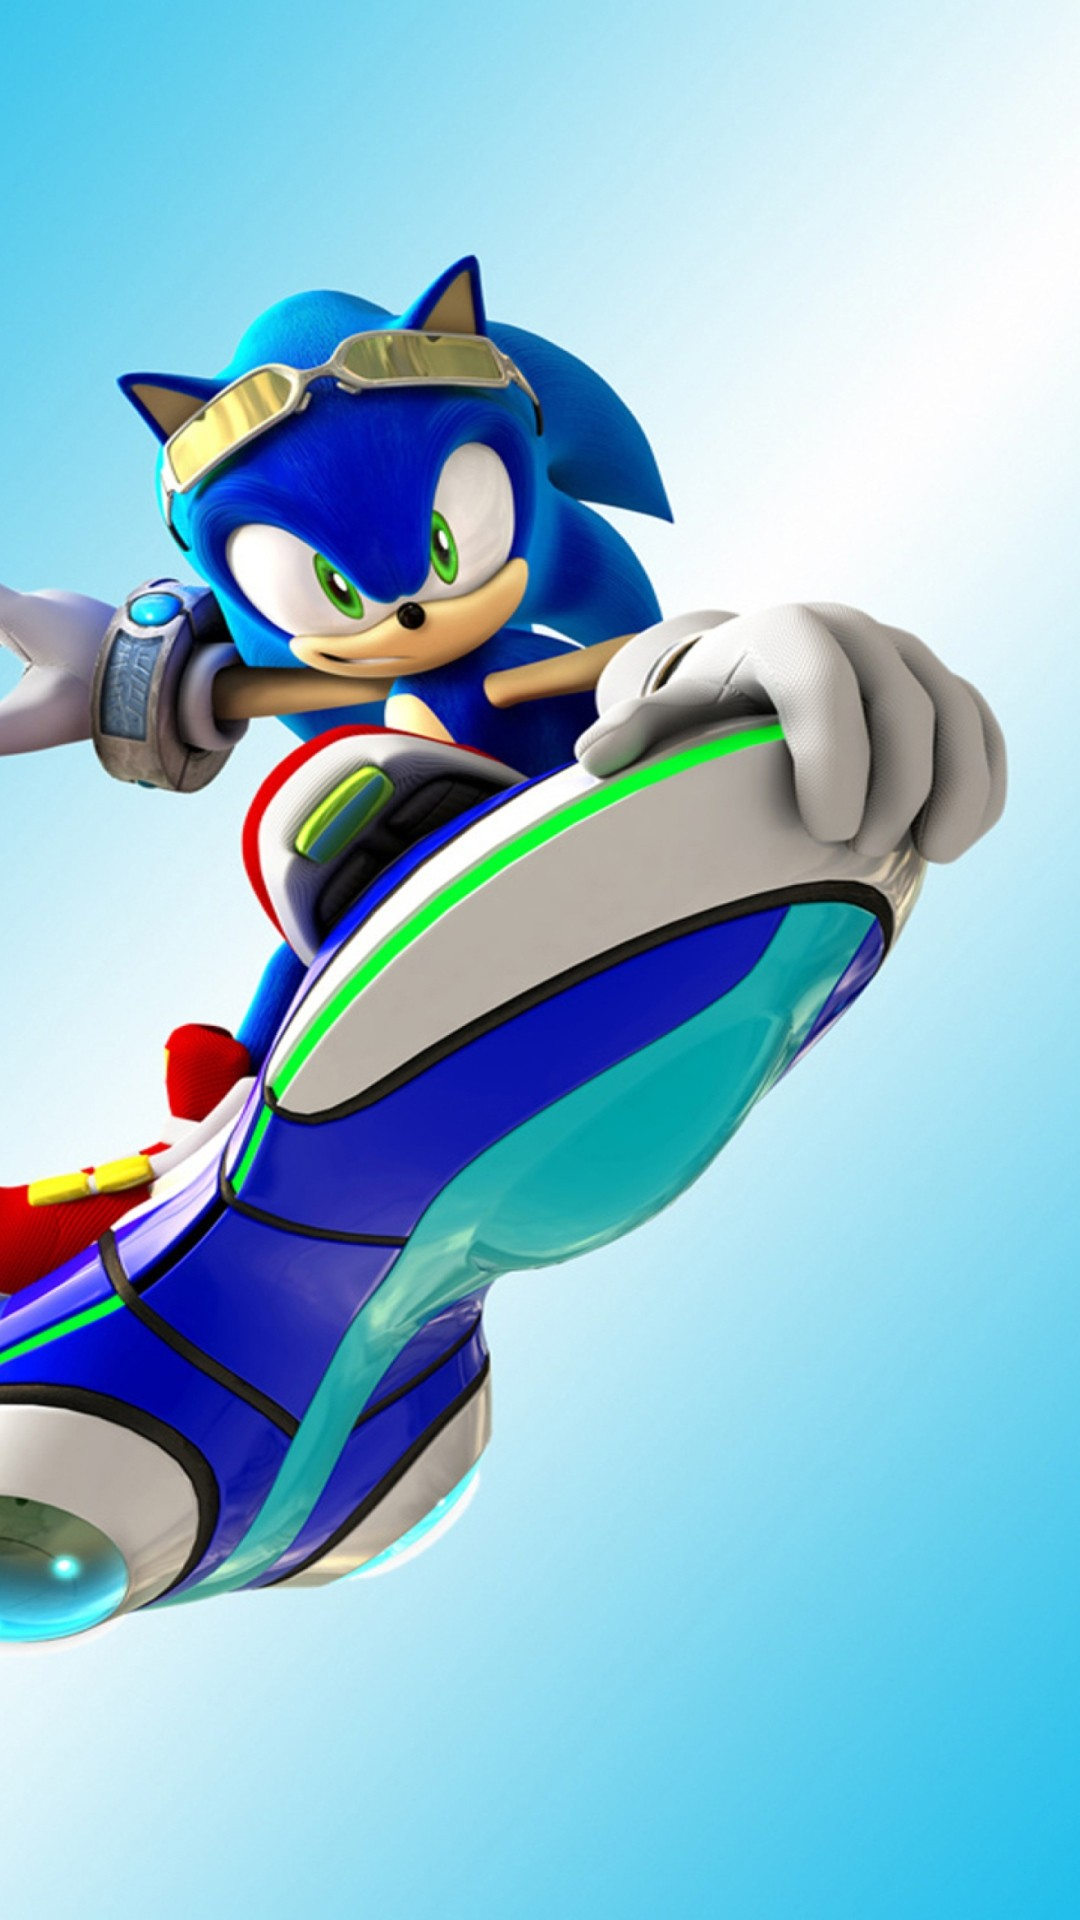 Sonic The Hedgehog screensaver wallpaper